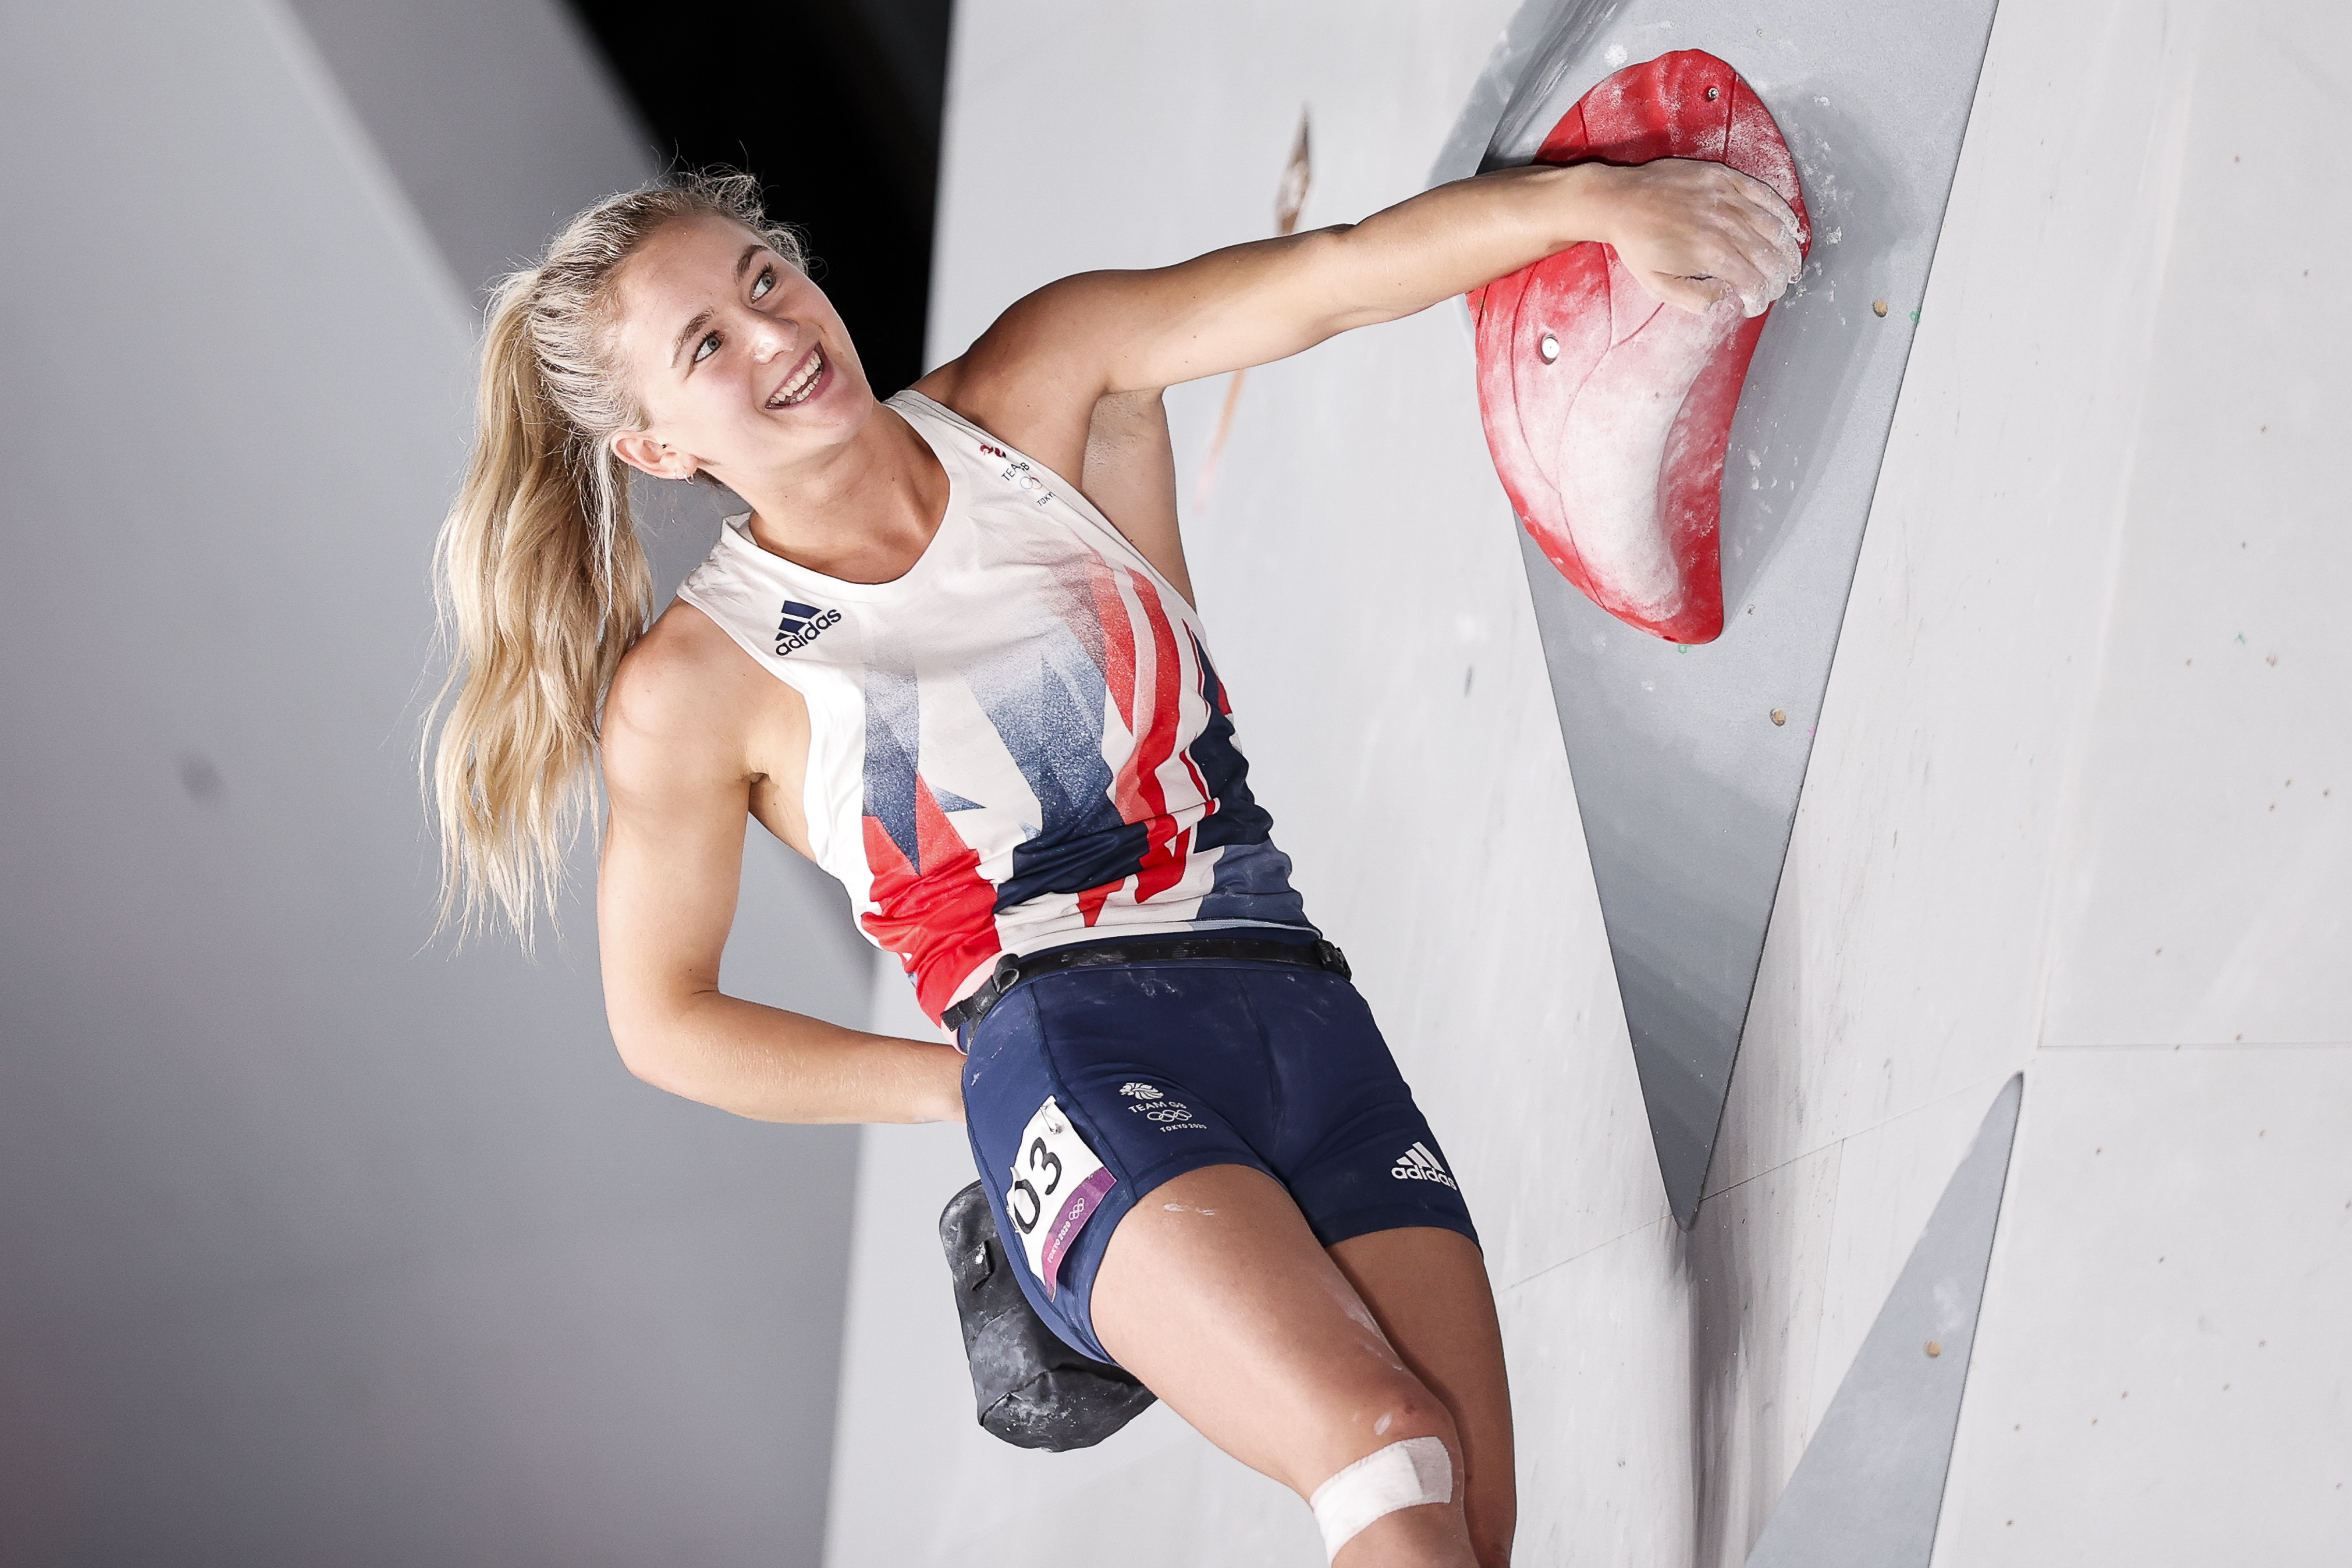 210927 IFSC News Shauna Coxsey elected President of the IFSC Athletes Commission